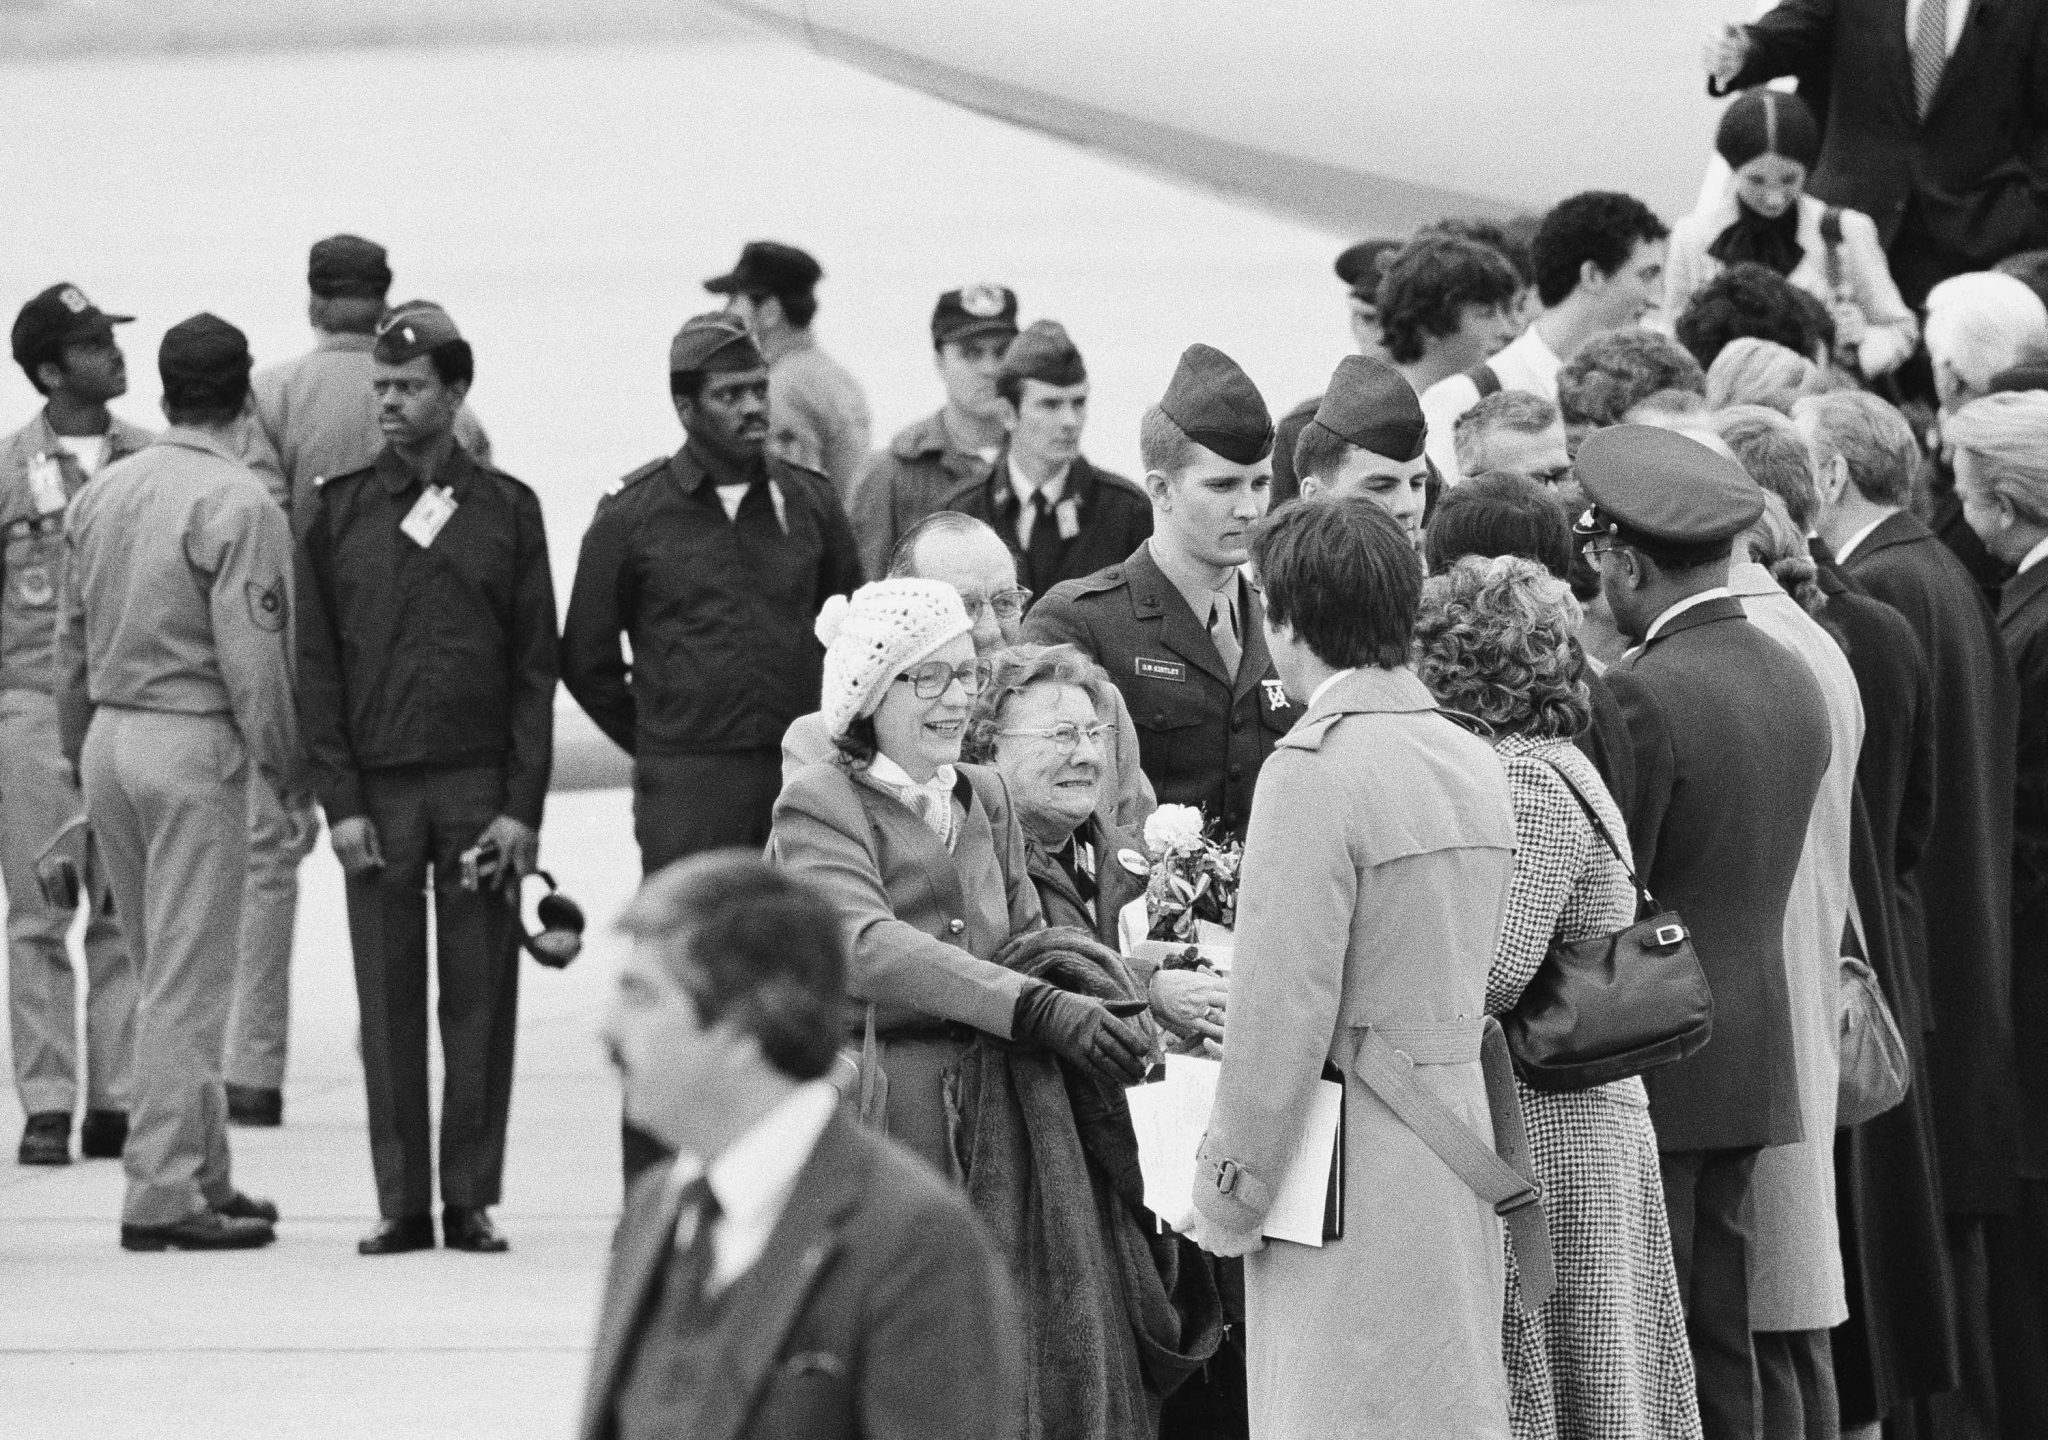 Freed hostage Kathryn Koob reaches out to shake hands with the receiving line after her arrival at Andrew Air Force Base, Md., on Tuesday, Jan. 27, 1981. She is followed by her parents, Elsie and Harold Koob of Jessup, Iowa, and former hostage Sgt. Steve Kirtley of Little Rock, Ark.